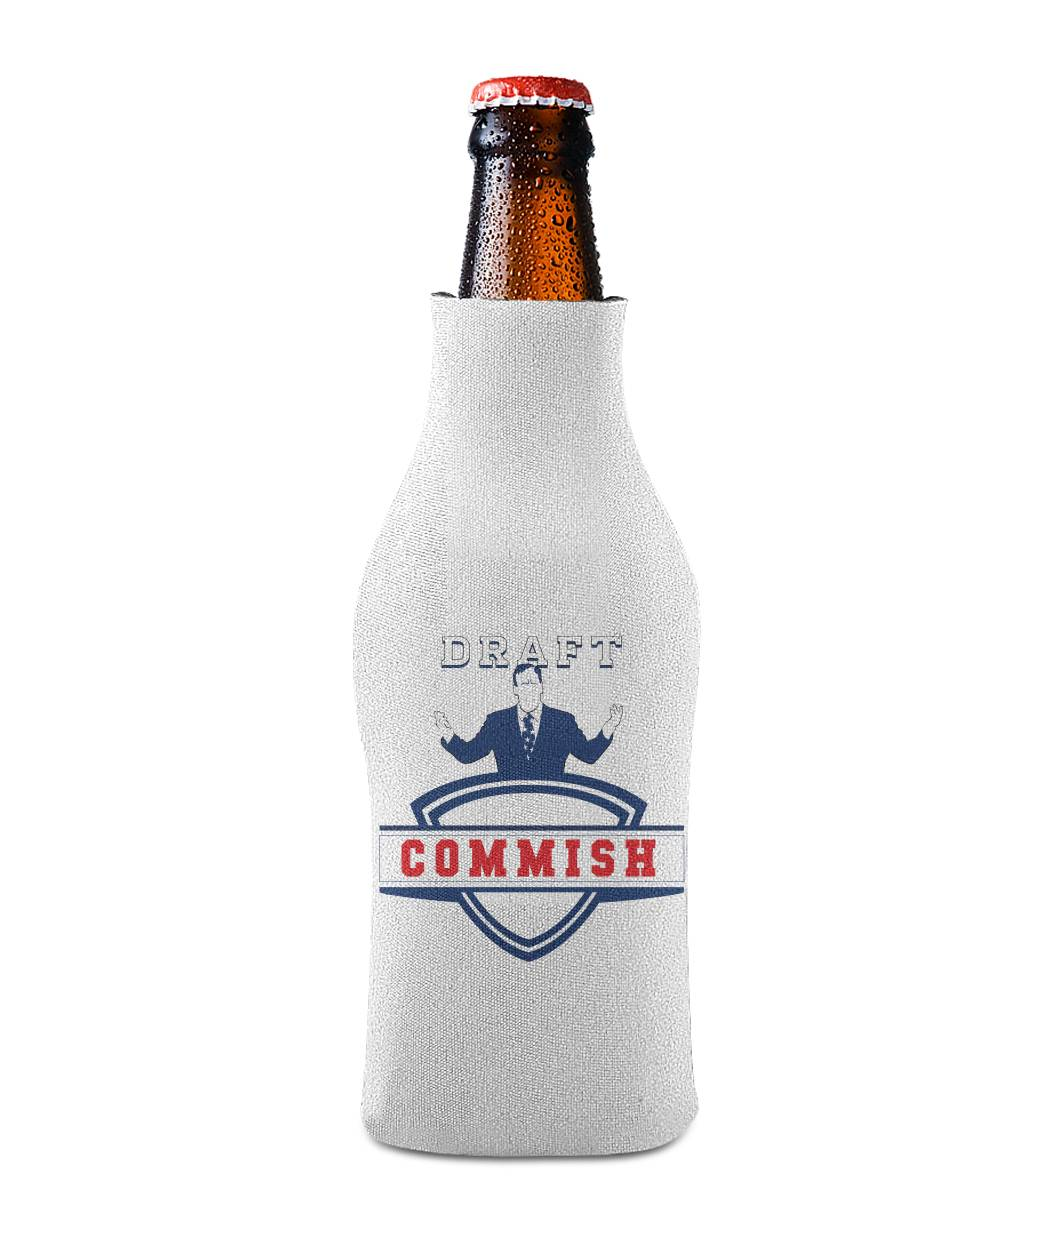 Commissioner's Koozie Bottle Sleeve - SaveTheDraft.com